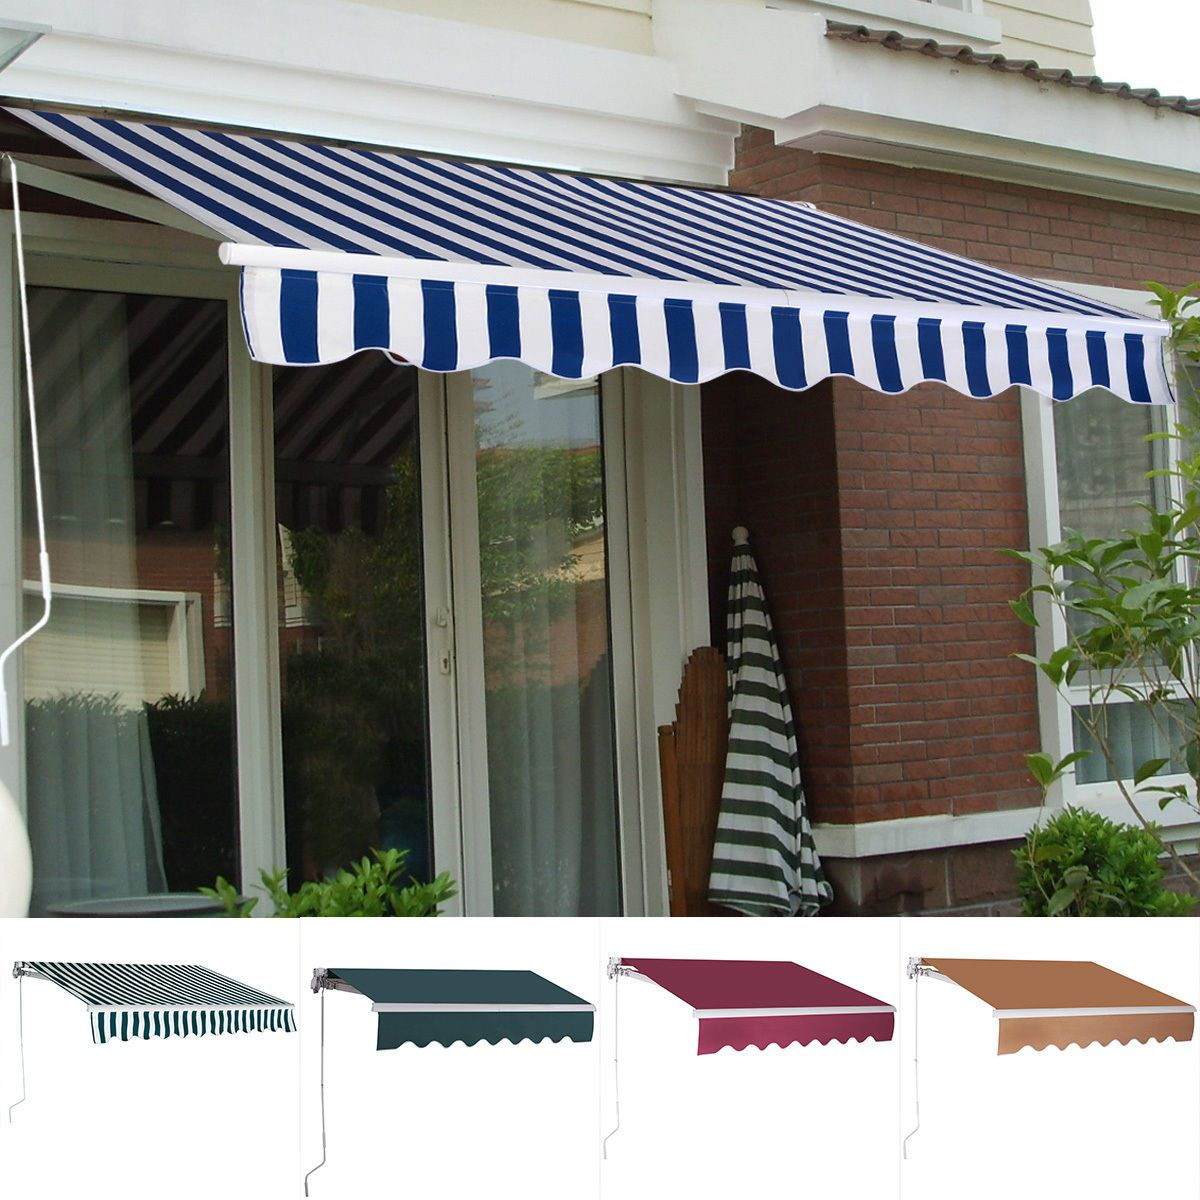 11 4 X9 8 Manual Patio Canopy Retractable Deck Awning Sunshade Shelter 5 Color Canopy Outdoor Deck Awnings Patio Awning